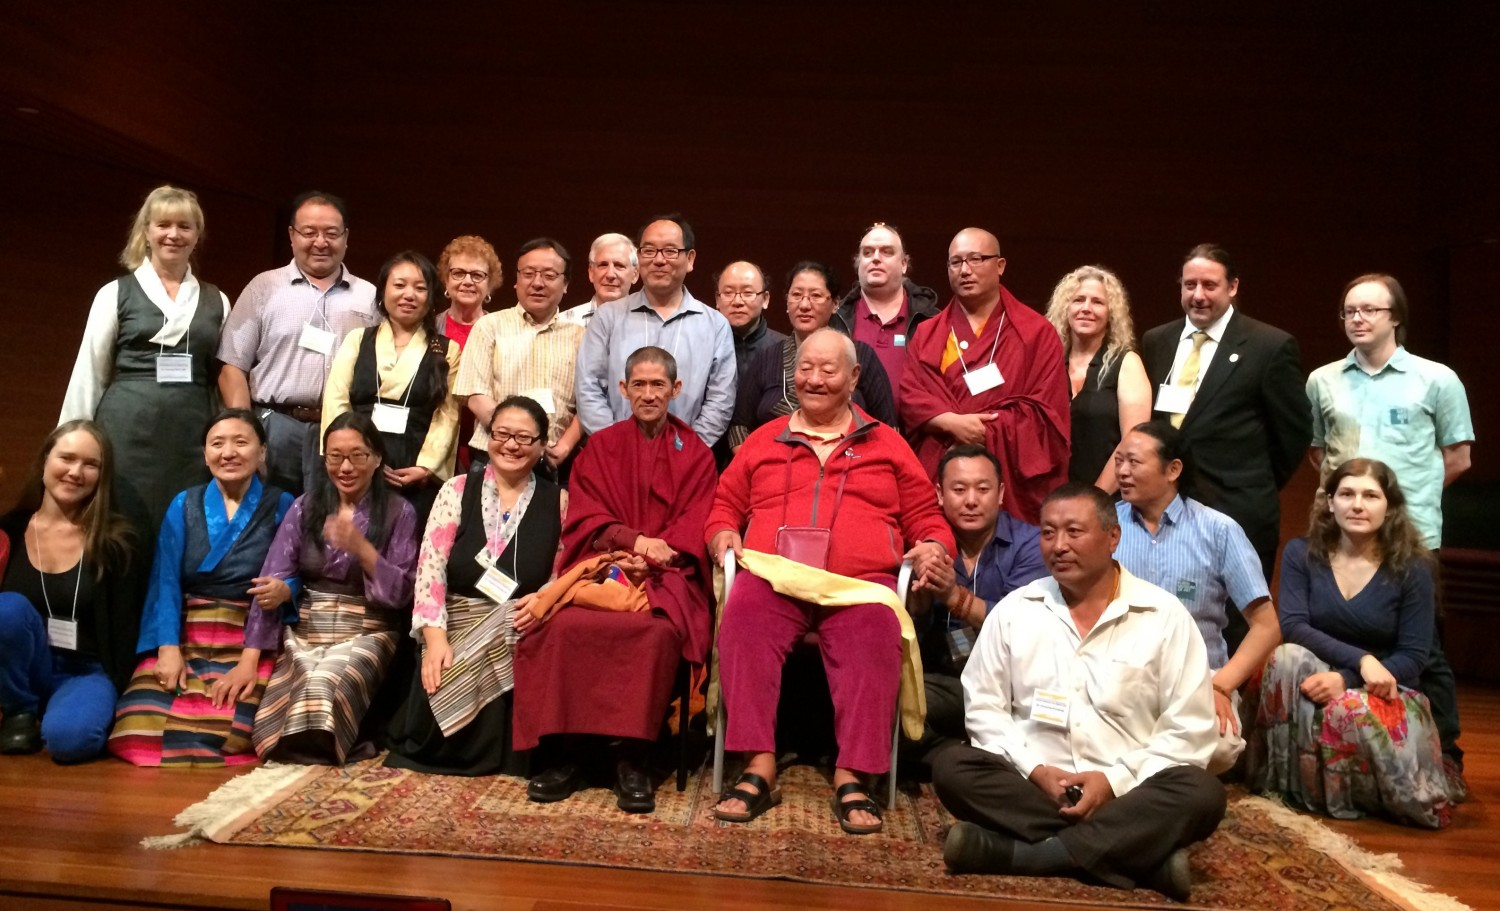 Entire group together with Chögyal Namkhai Norbu of Tibetan physician presenters and attendees, graduates and current Tibetan Medical students with Shang Shung Institute, ATMA and Shang Shung Institute Board members, and friend the Venerable Lama Khempo Pema (at Rinpoche's right)